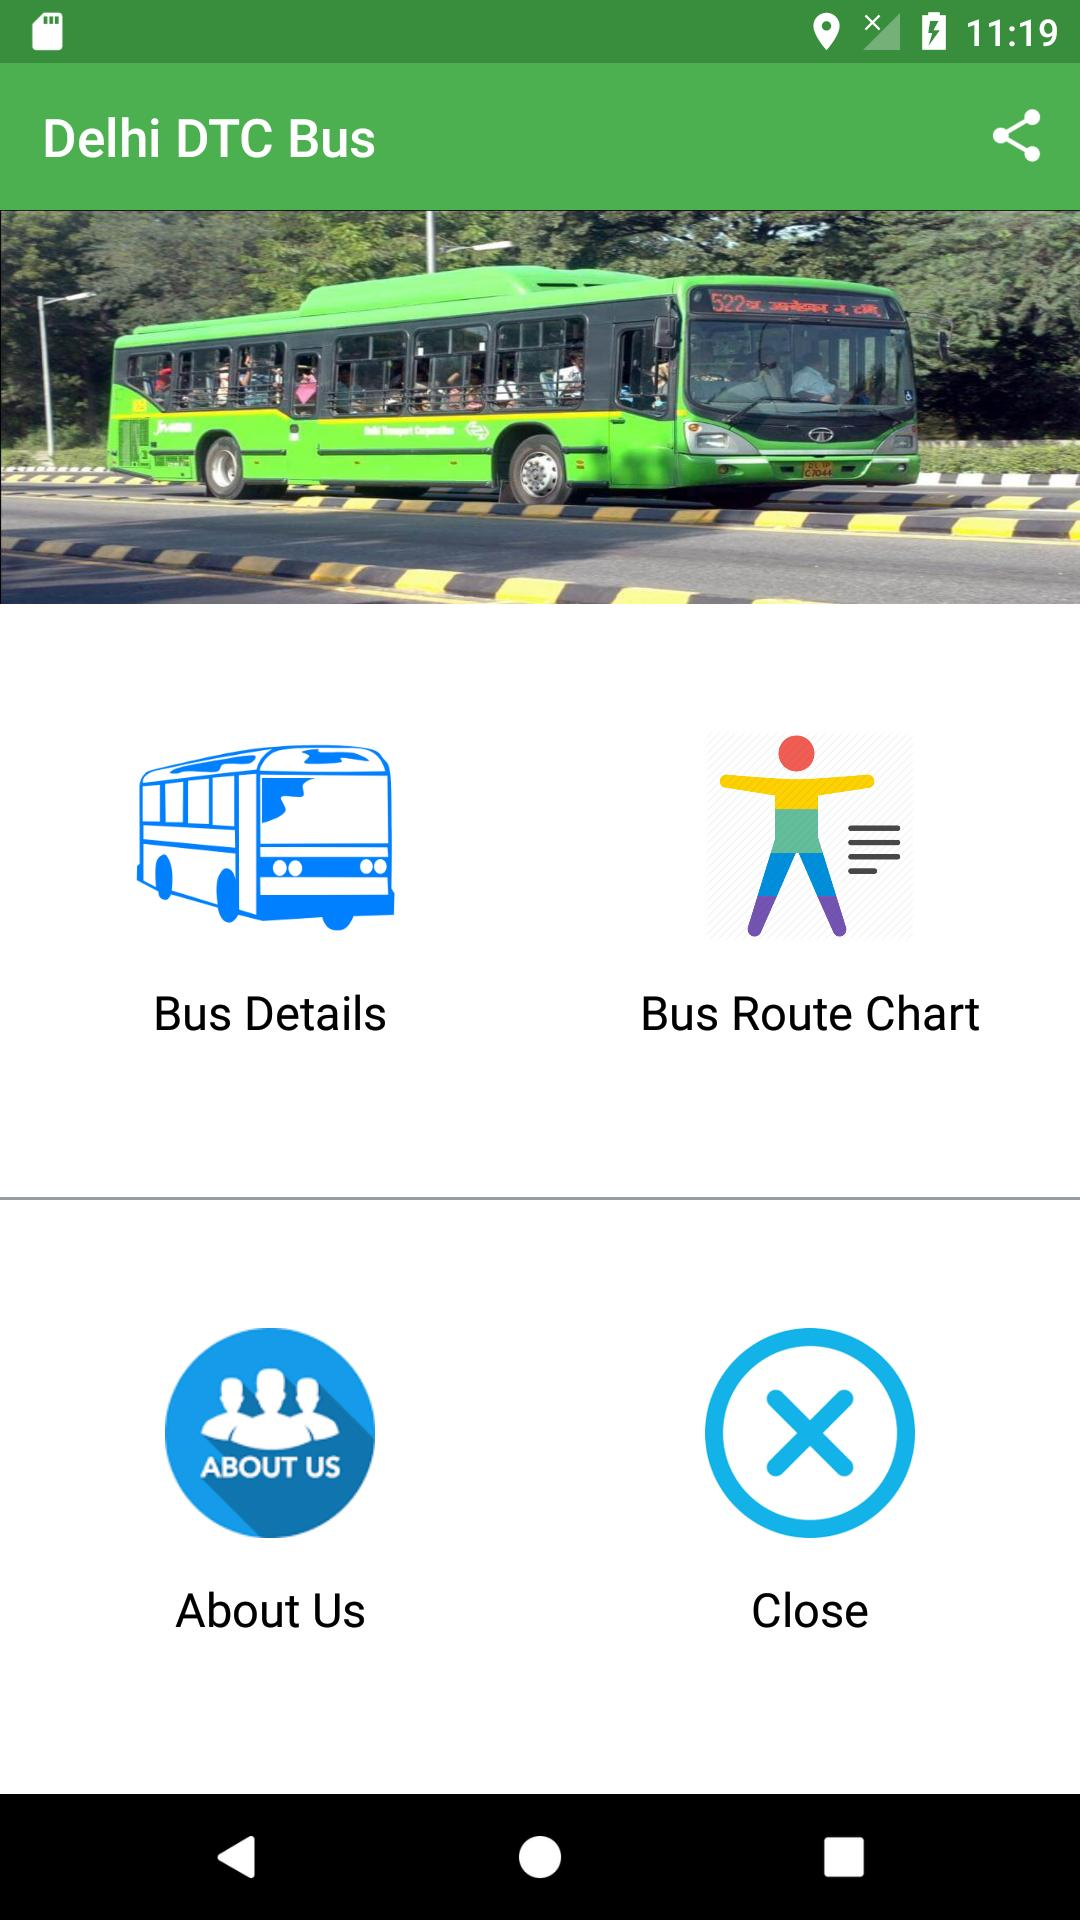 Delhi DTC Bus for Android - APK Download on